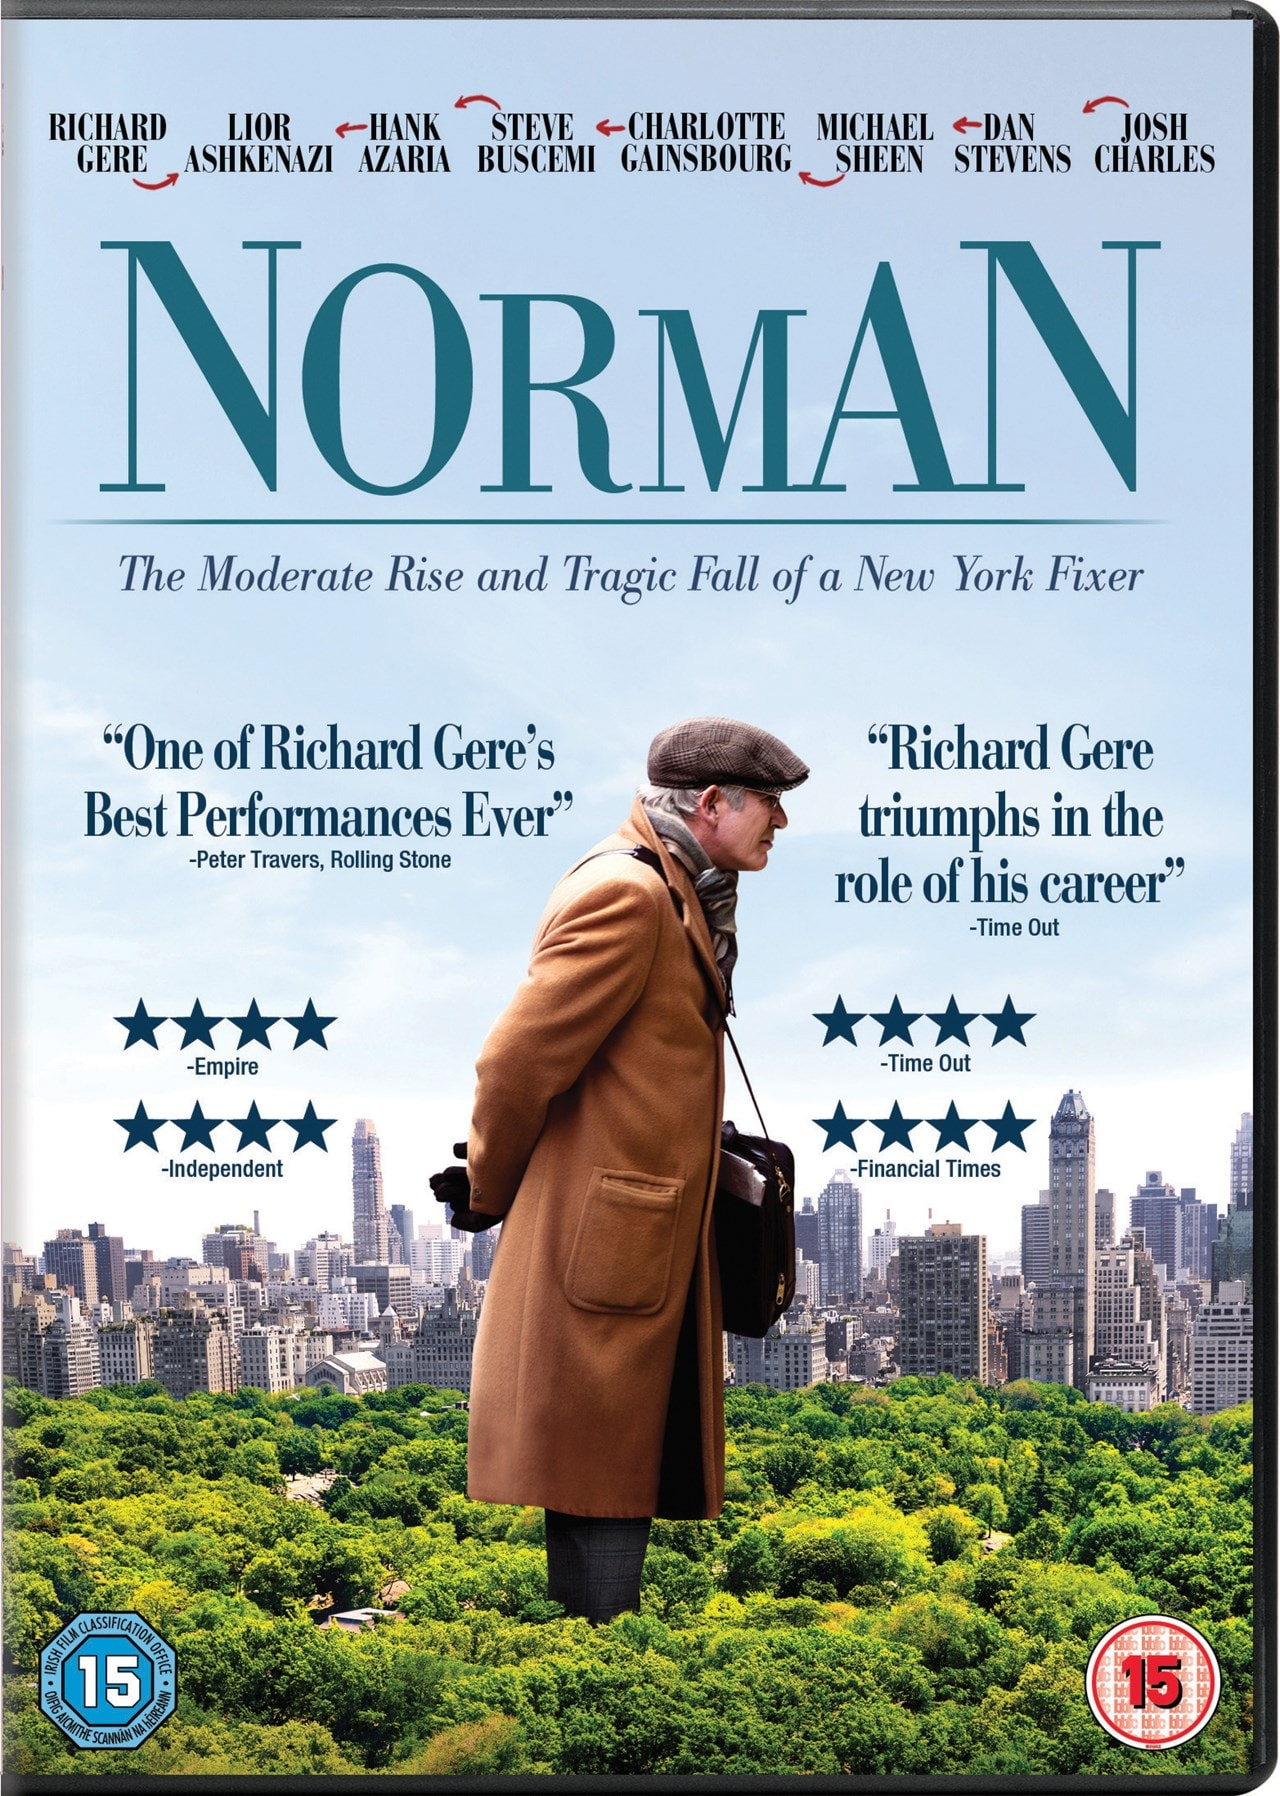 Norman: The Moderate Rise and Tragic Fall of a New York Fixer - 1